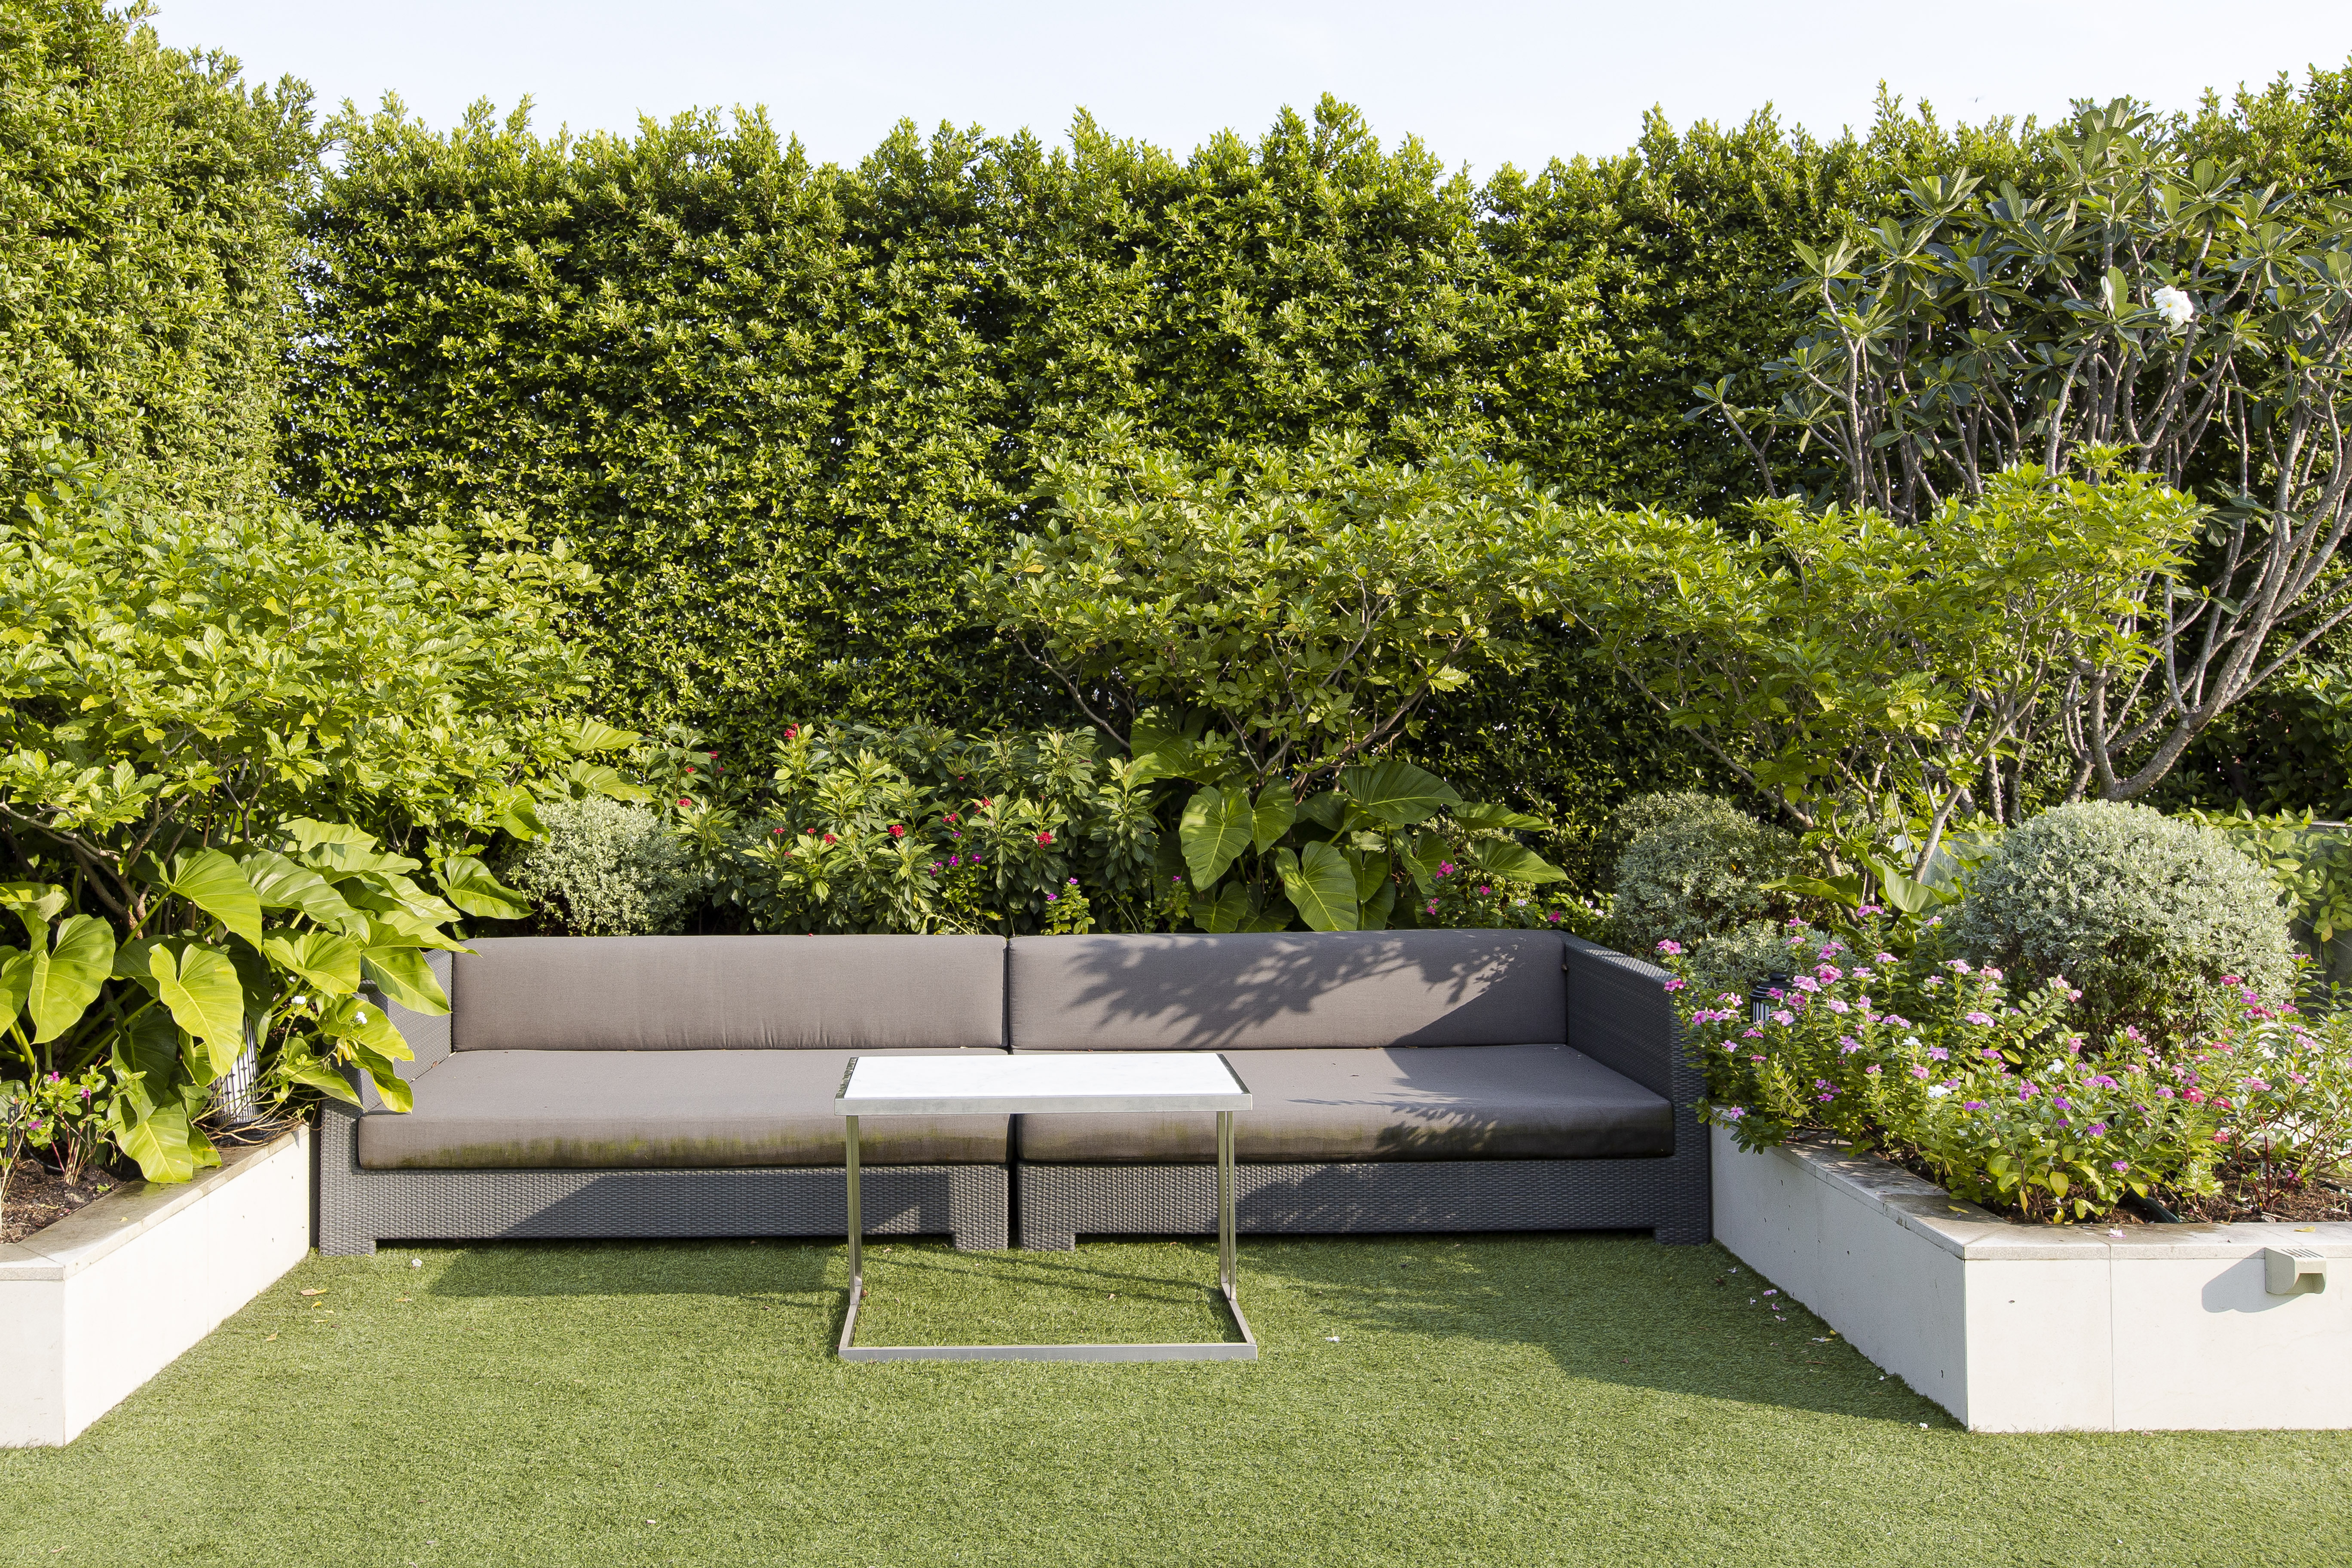 cosy garden seating nook sectioned with plants